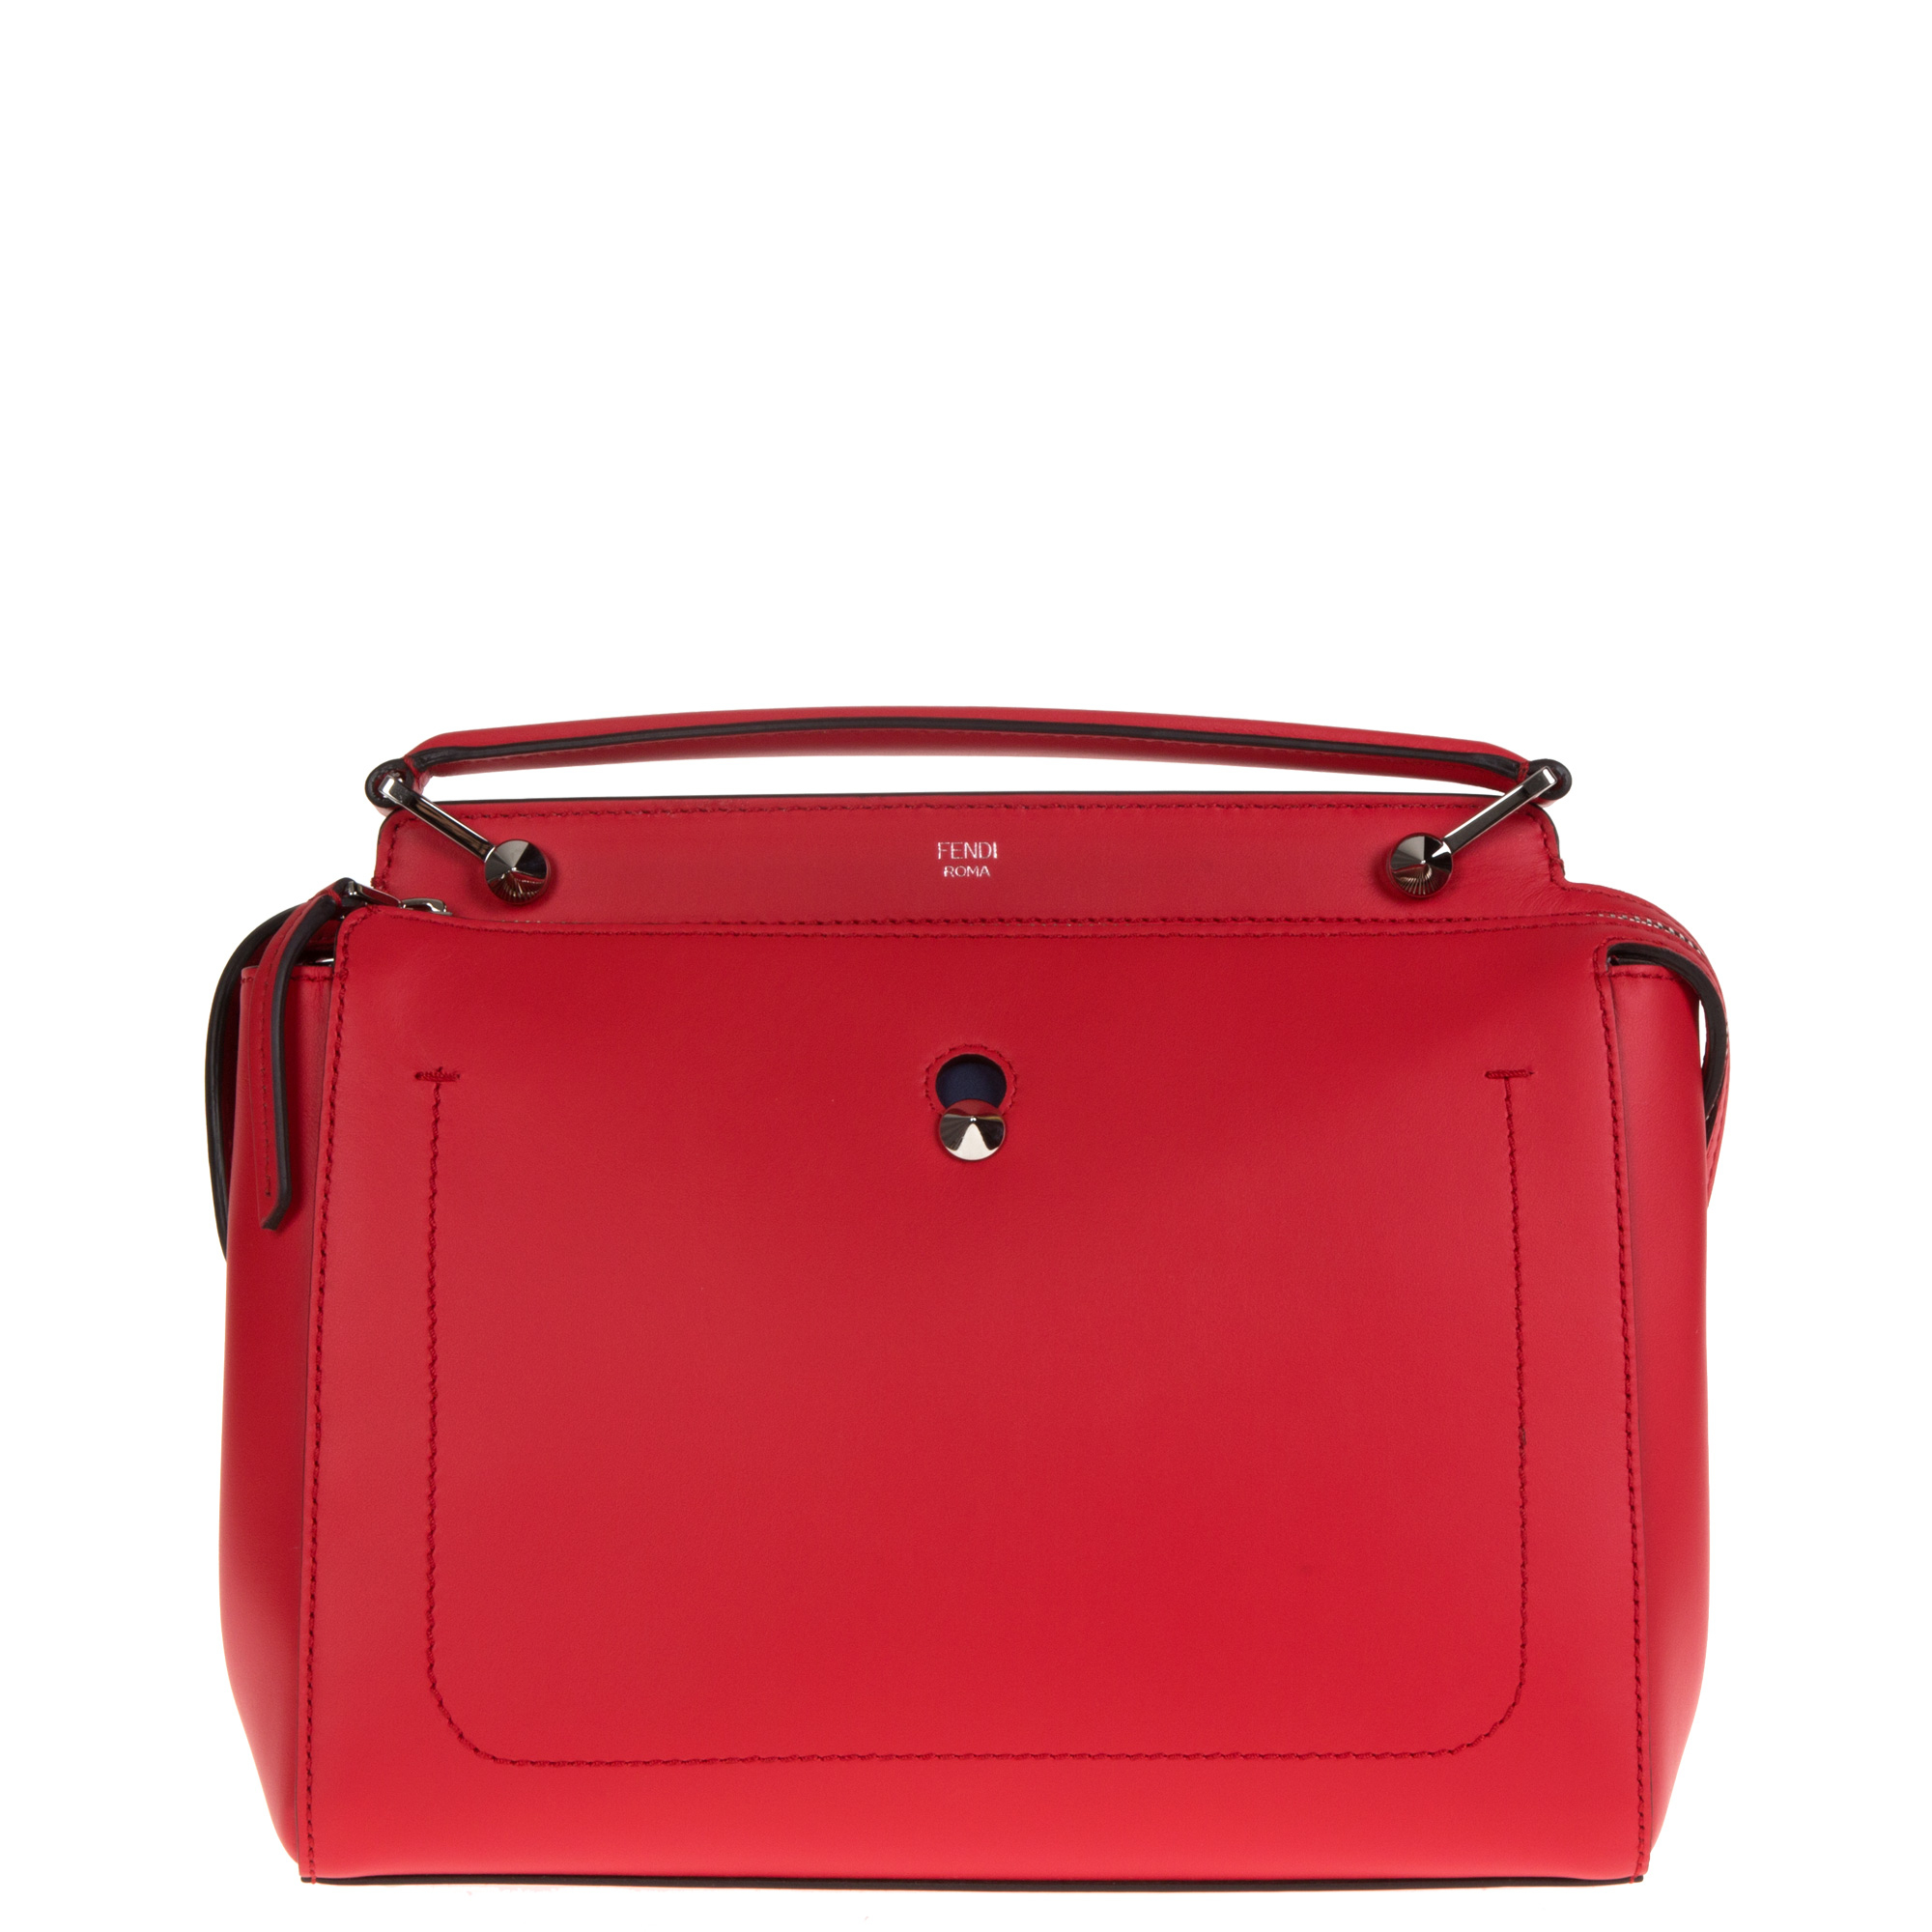 f7d219d381 Fendi Dotcom Leather Bag in Red - Lyst